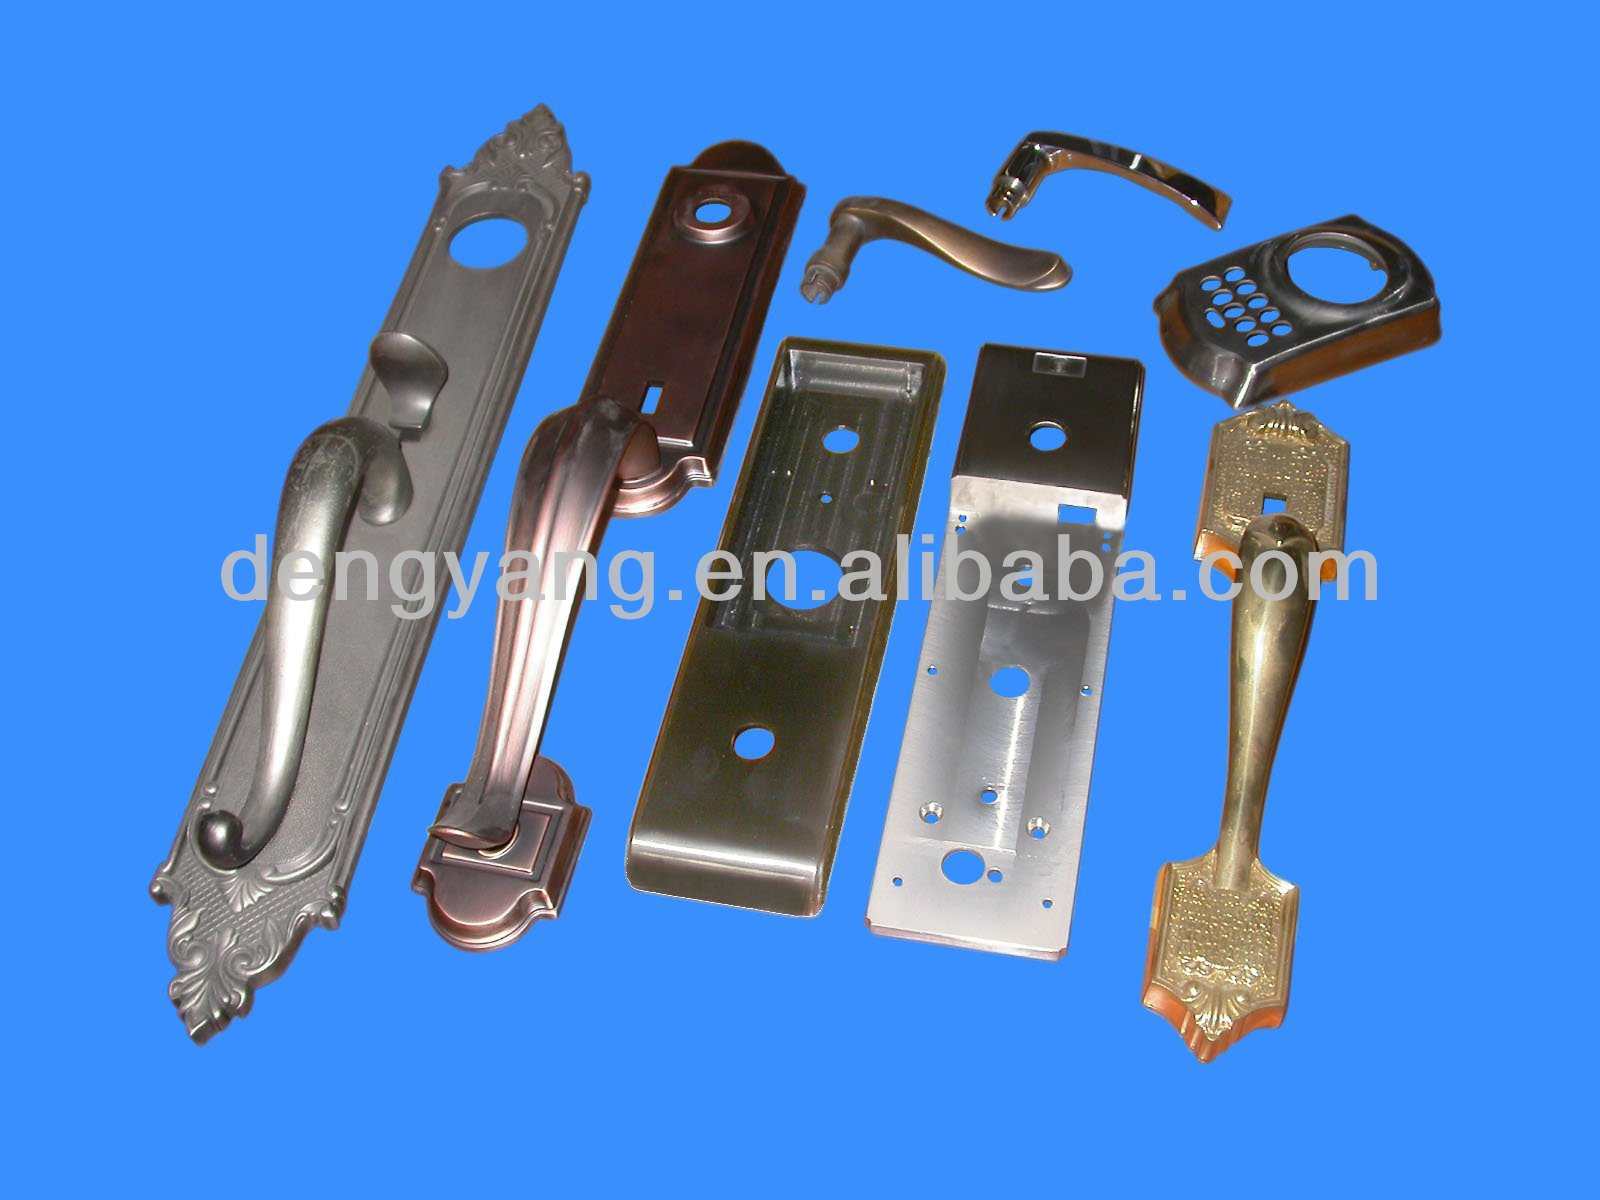 ODM Brass Door Handles and Door Plates